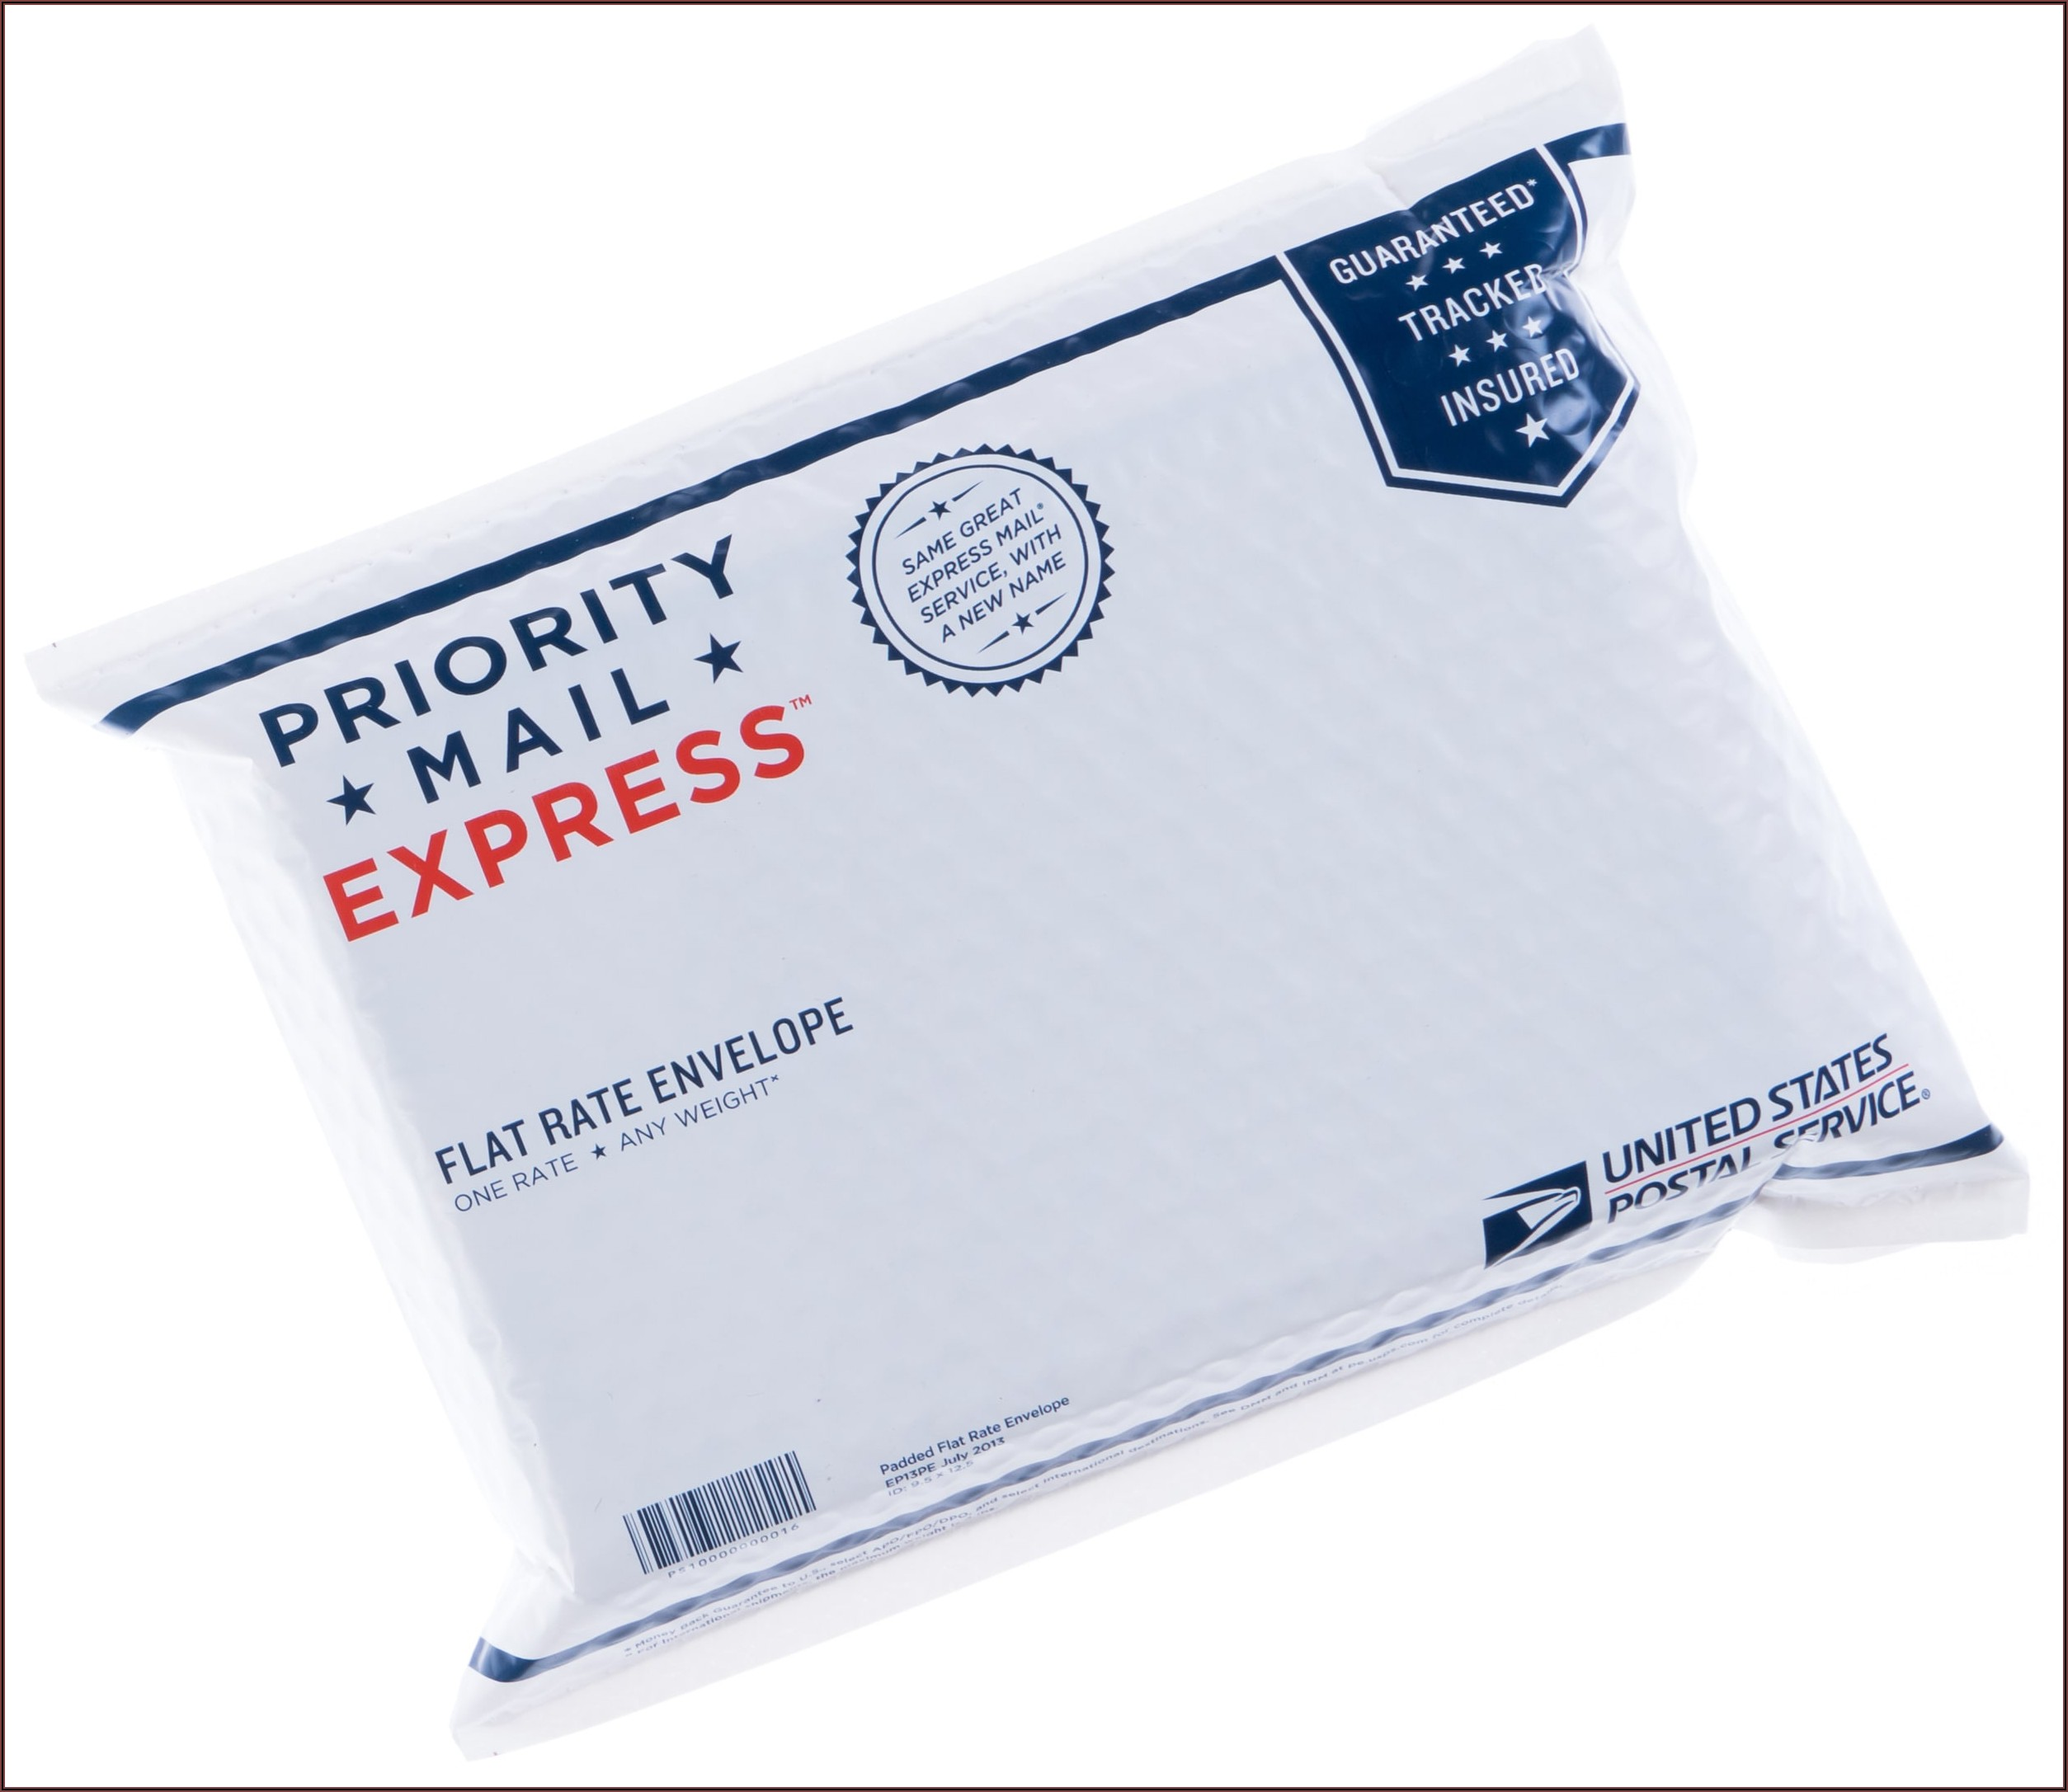 Usps Priority Flat Rate Padded Envelope Shipping Cost